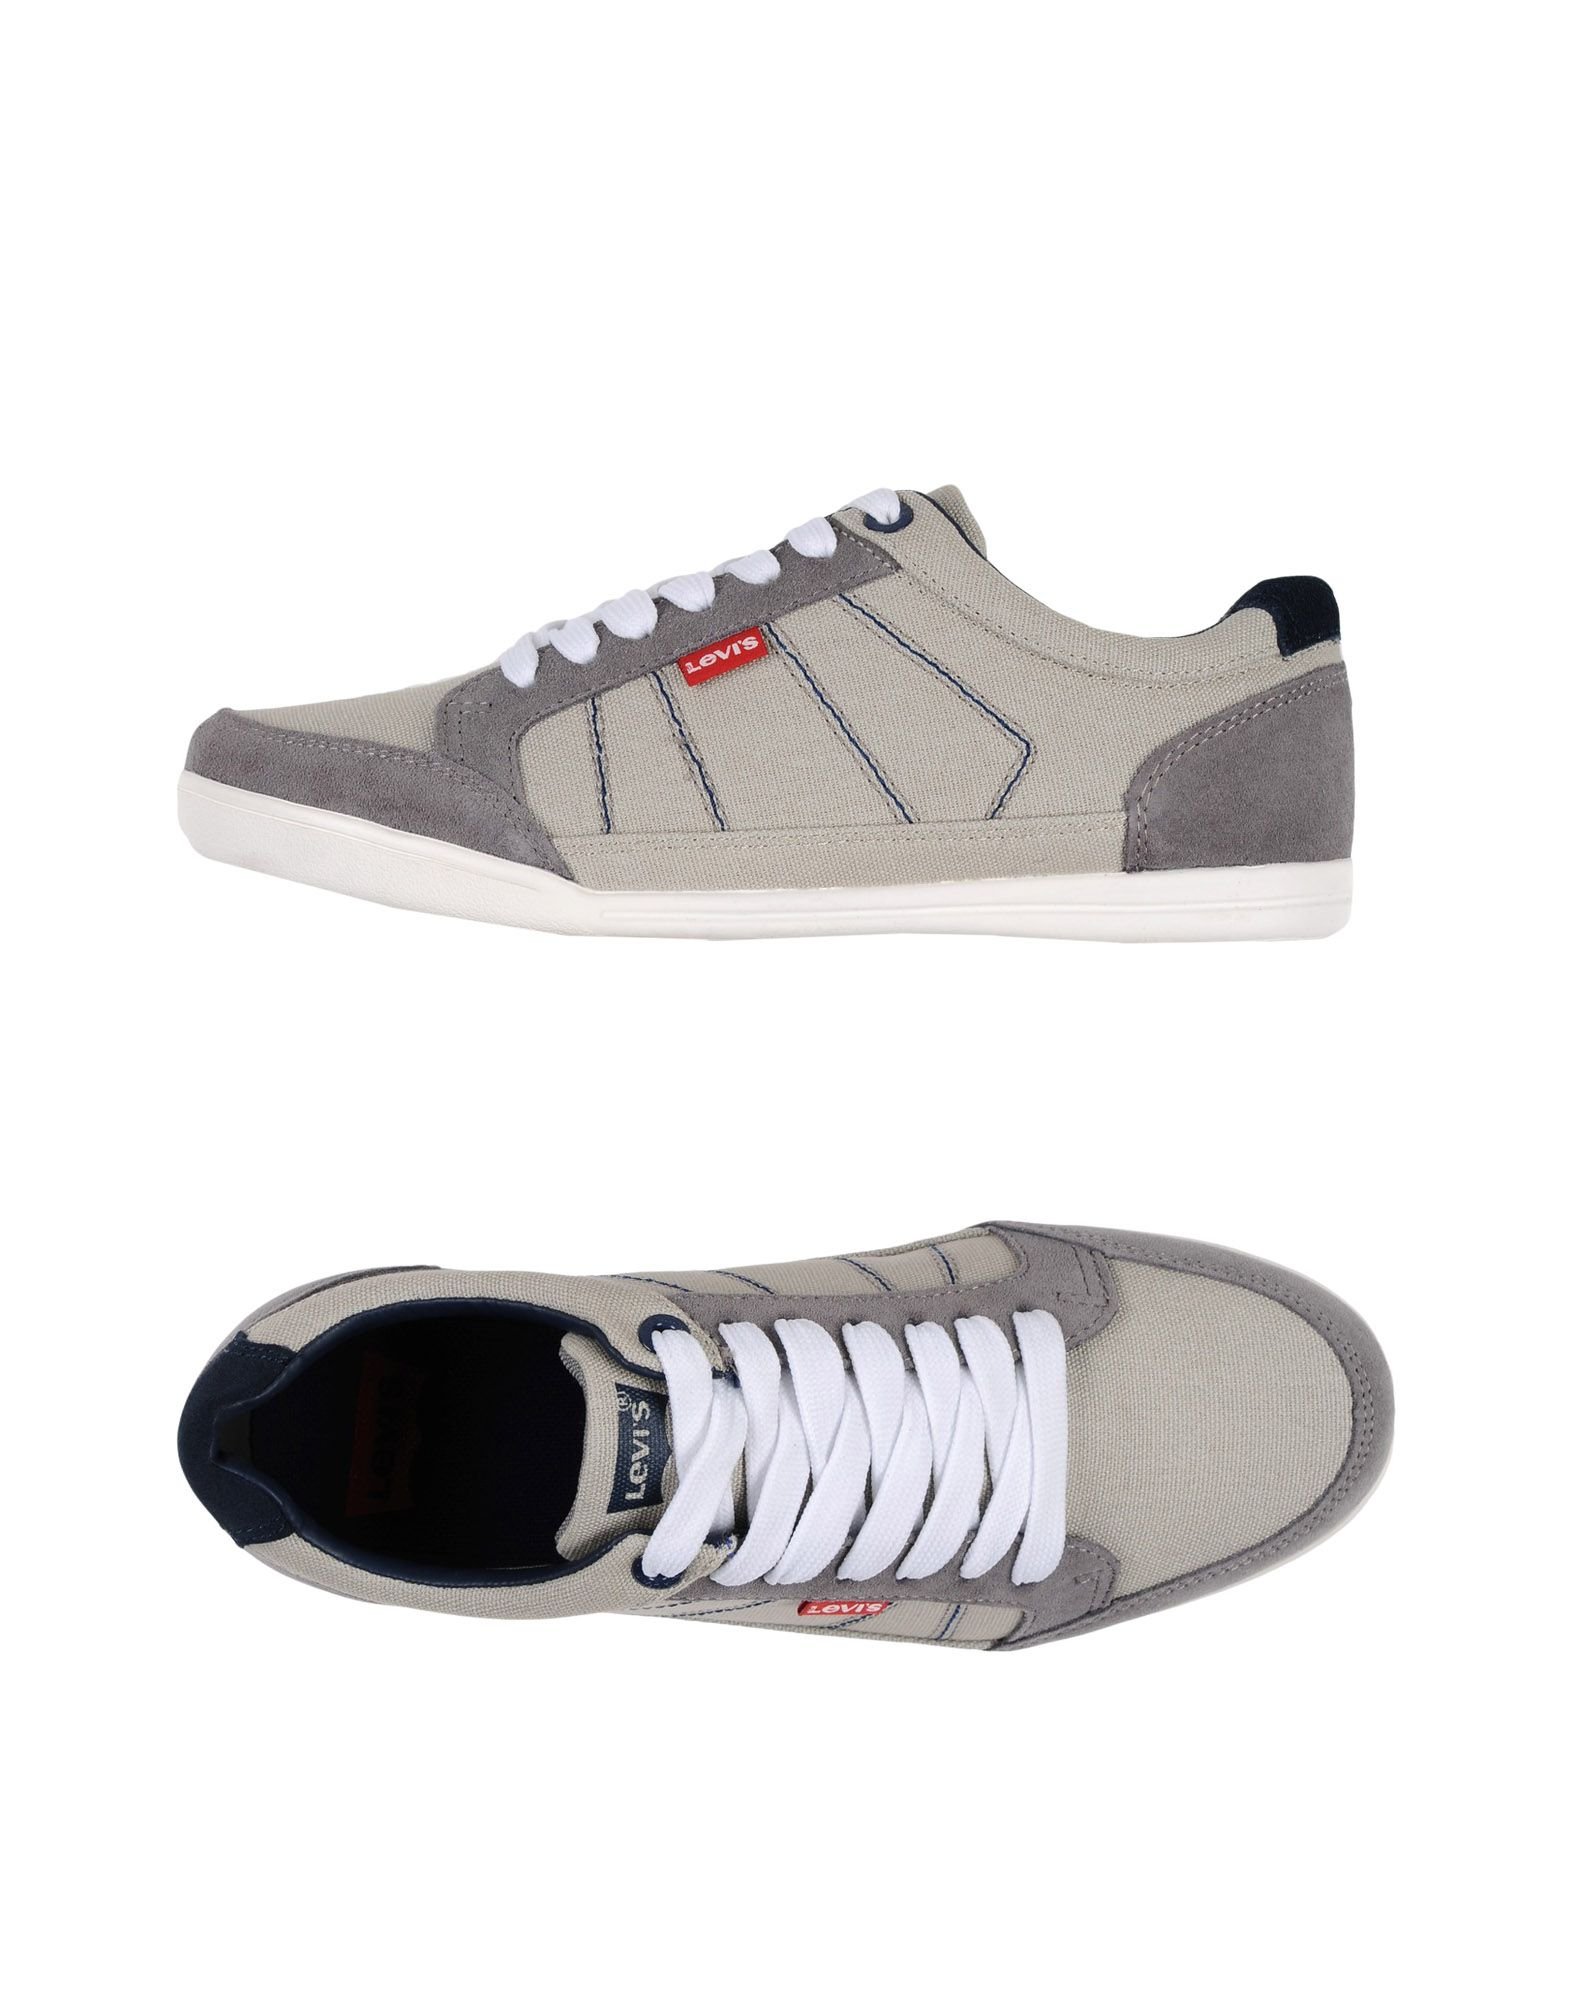 Sneakers Levi's Red Tab Uomo - 11464228JQ